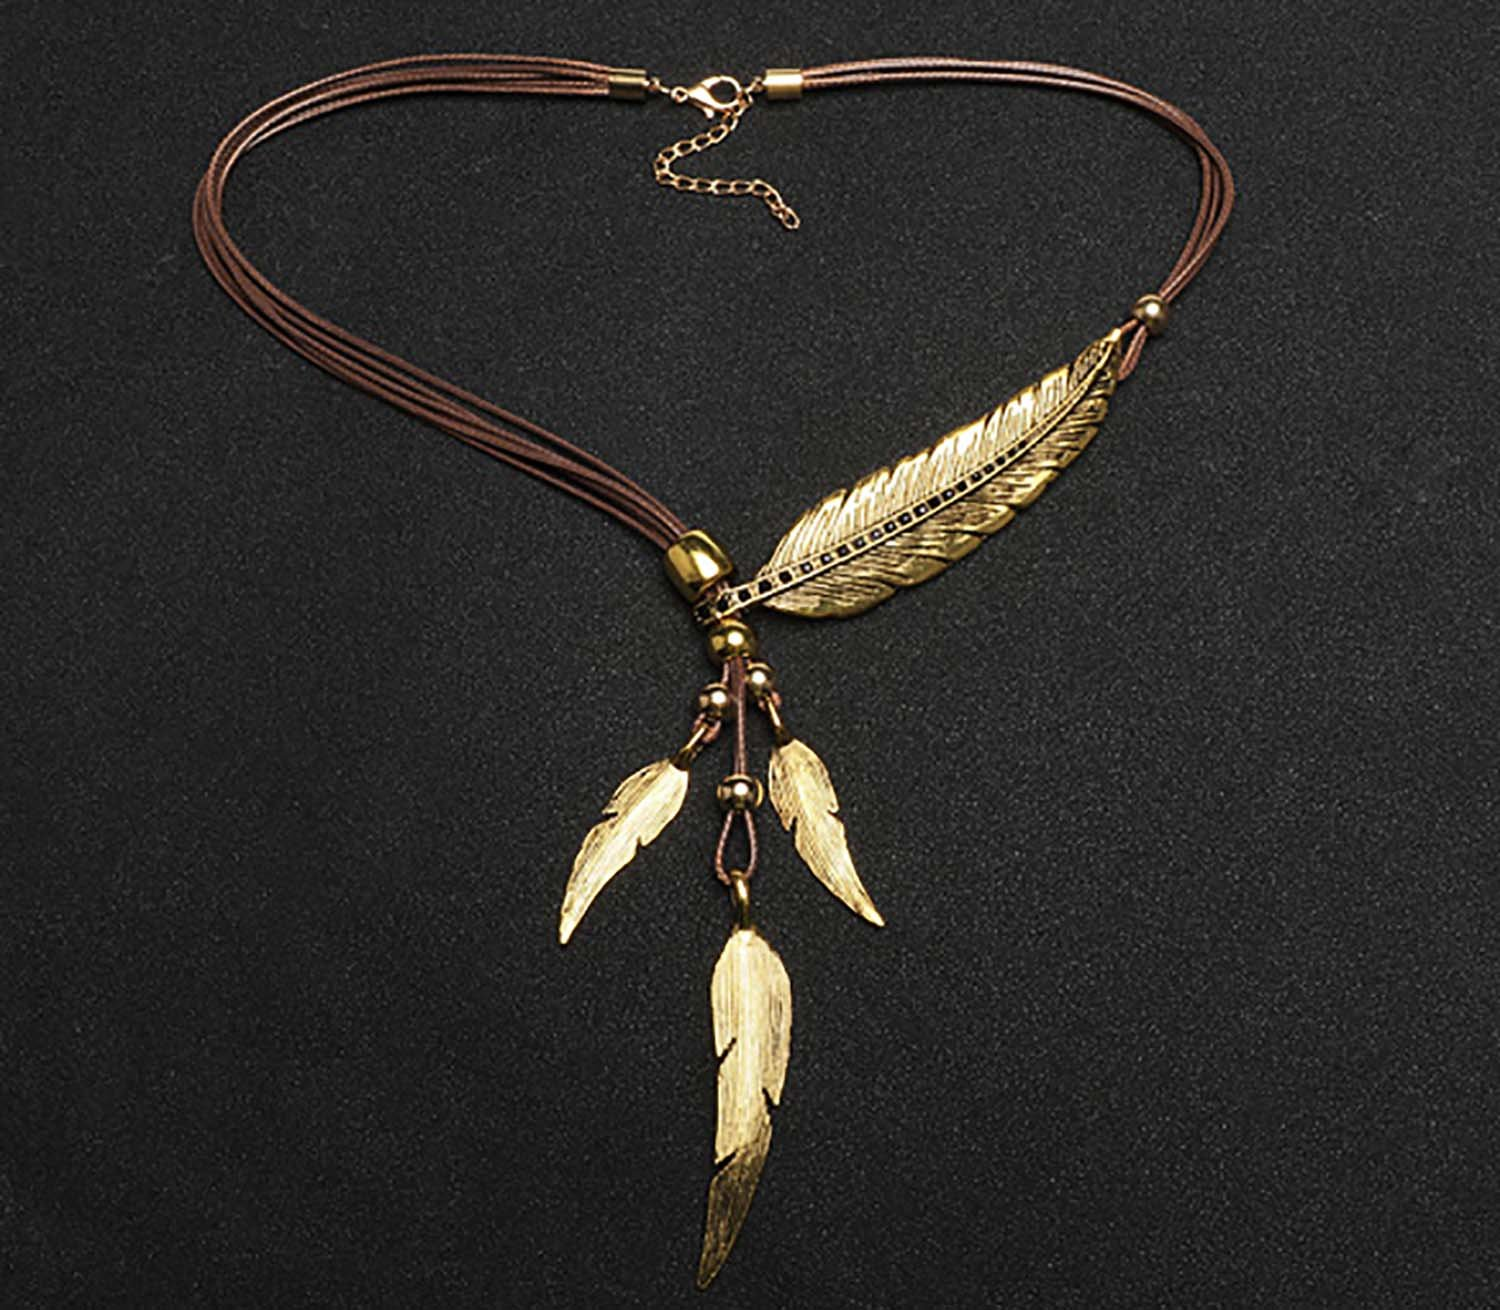 Onbio Bohemian Style Bronze Rope Chain Feather Pattern Pendant Necklace Retro Design Necklace (Gold)